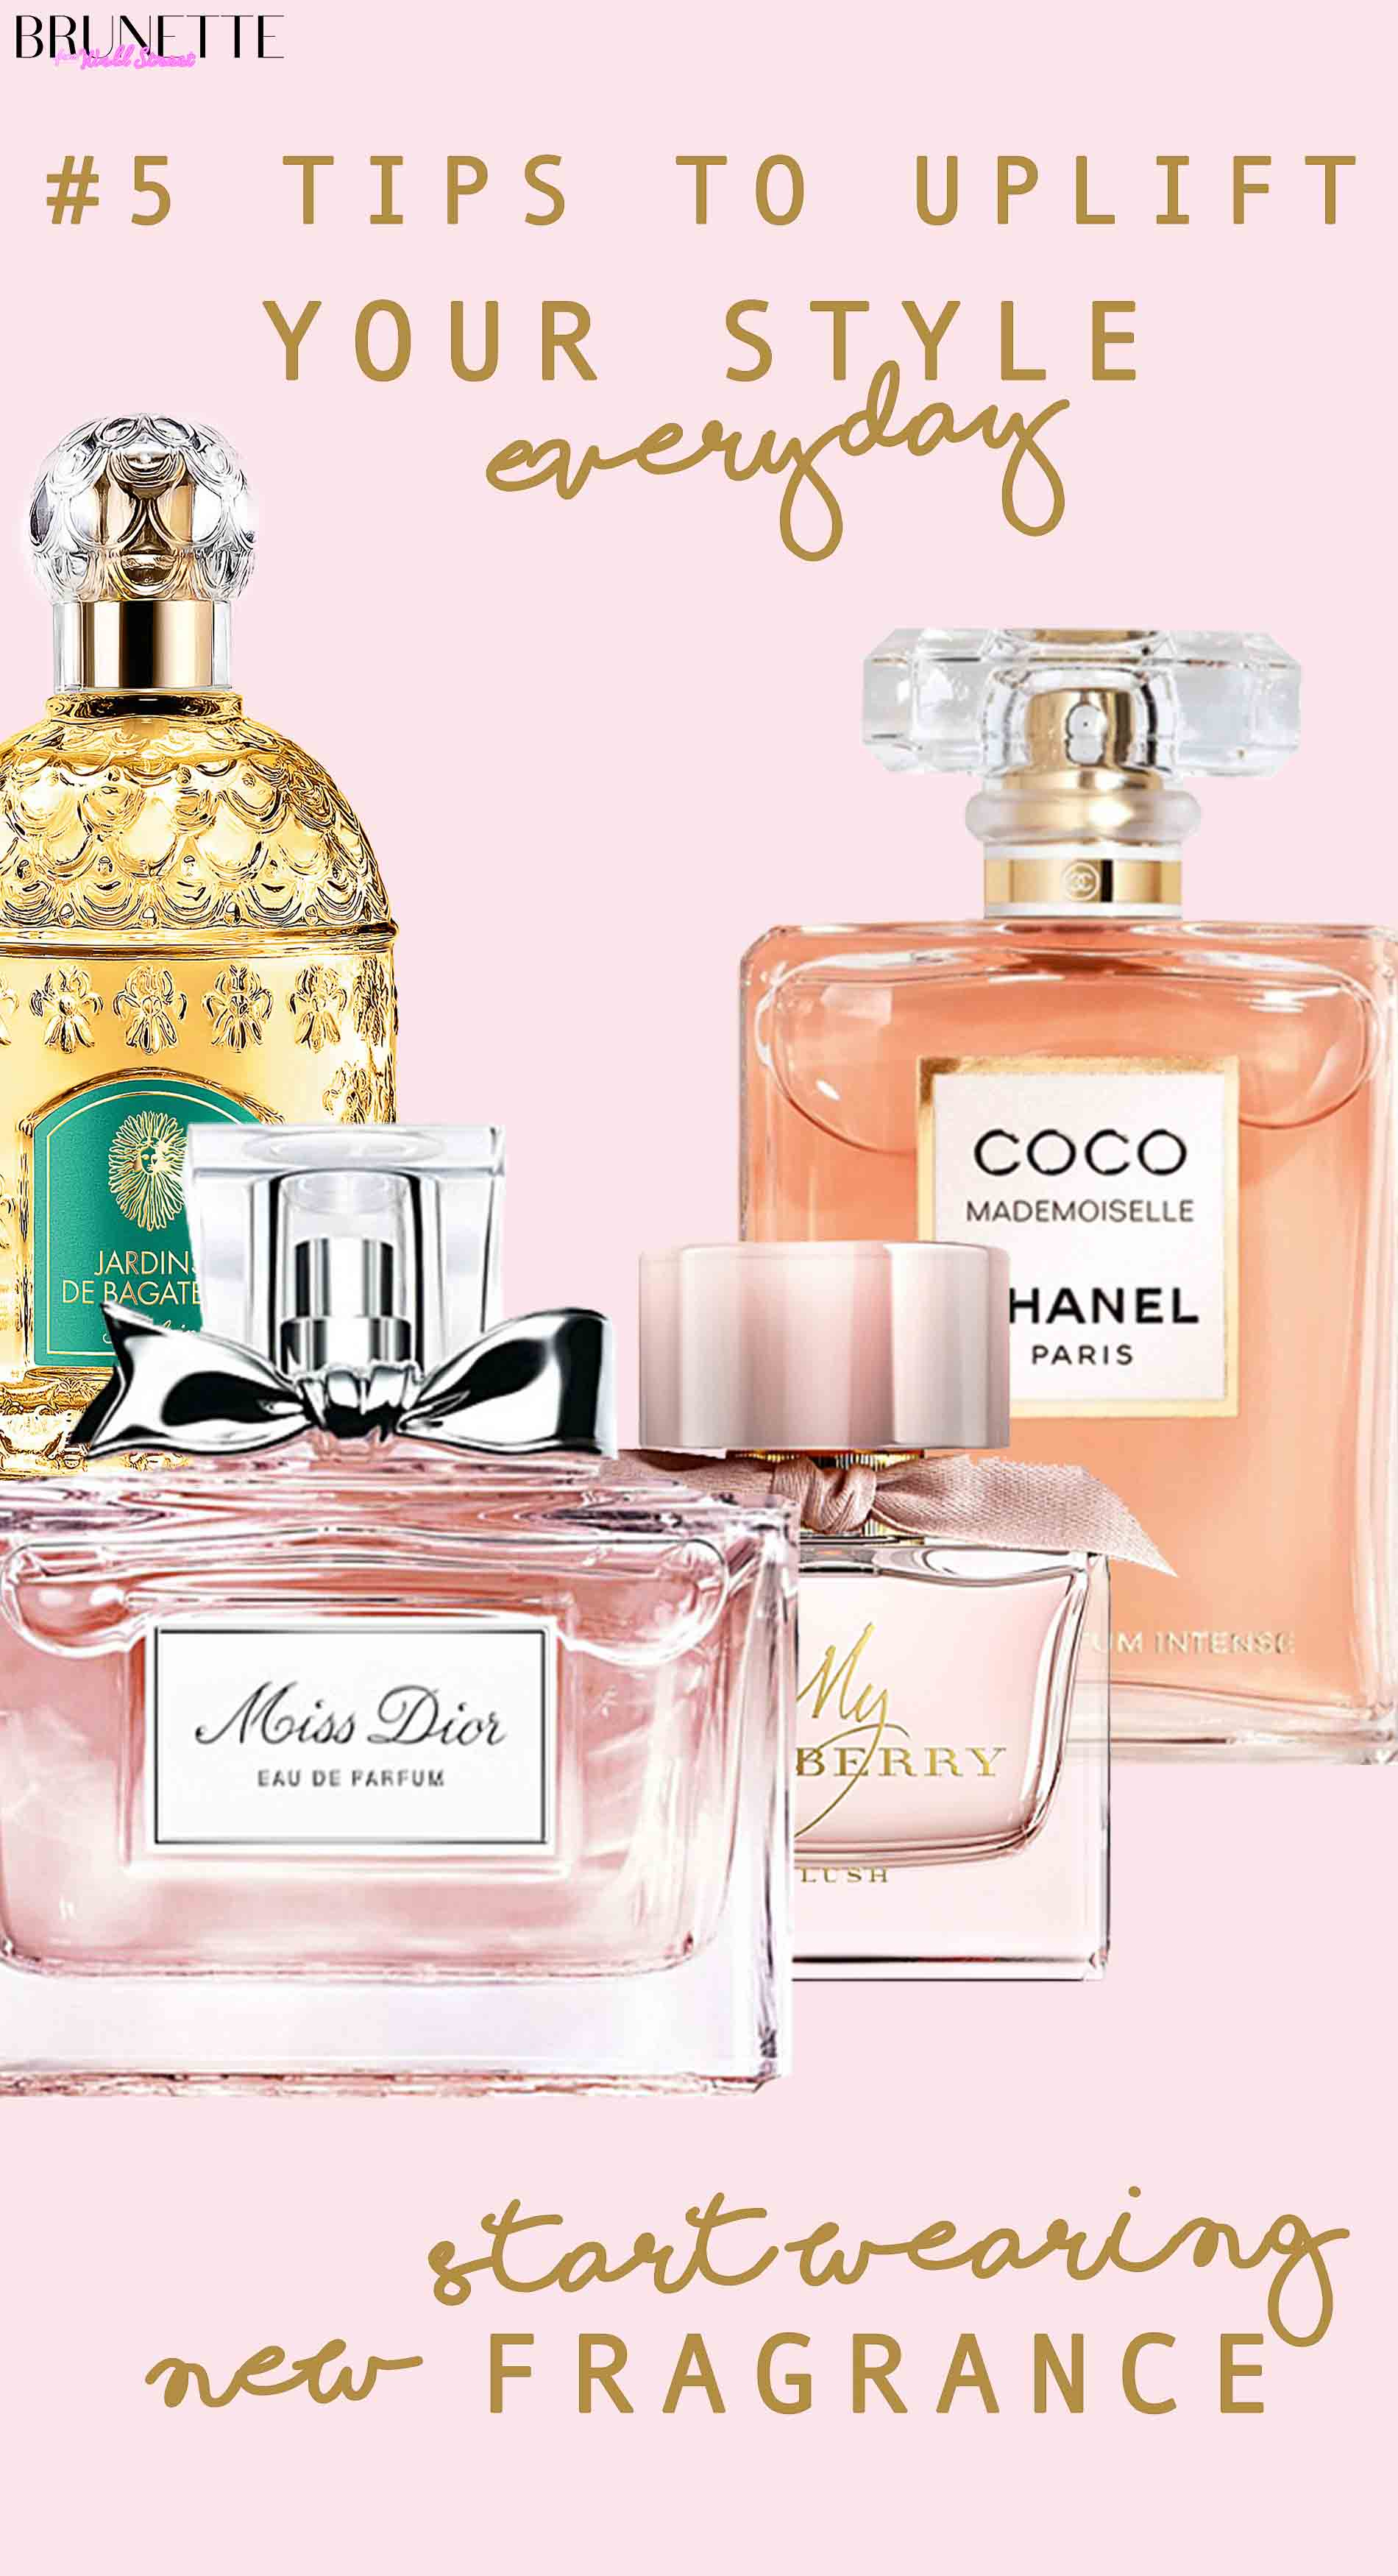 2018 best Spring Perfumes with text overlay #5 Things that will instantly uplift your everyday style fragrance